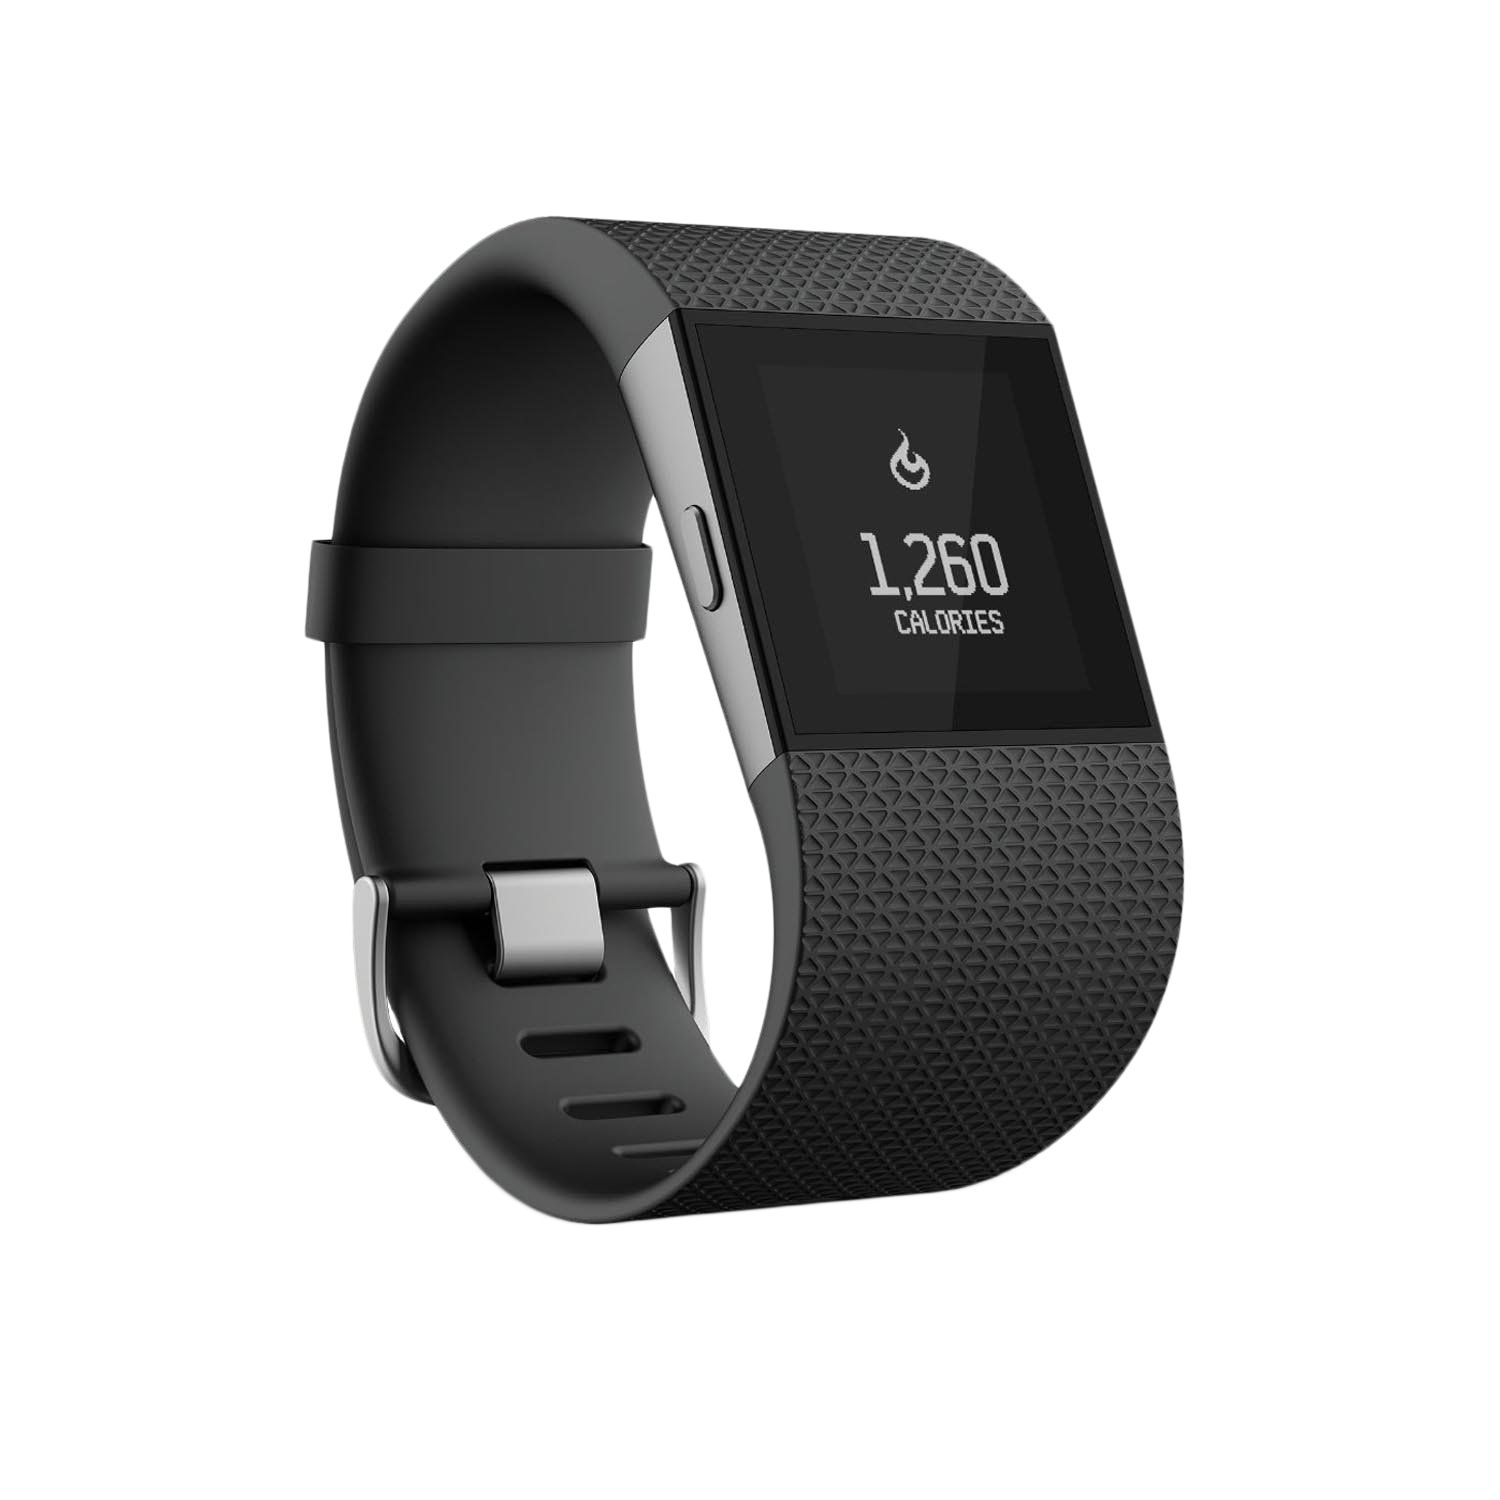 FitBit Surge sports watch A Fitbit fitness tracker.